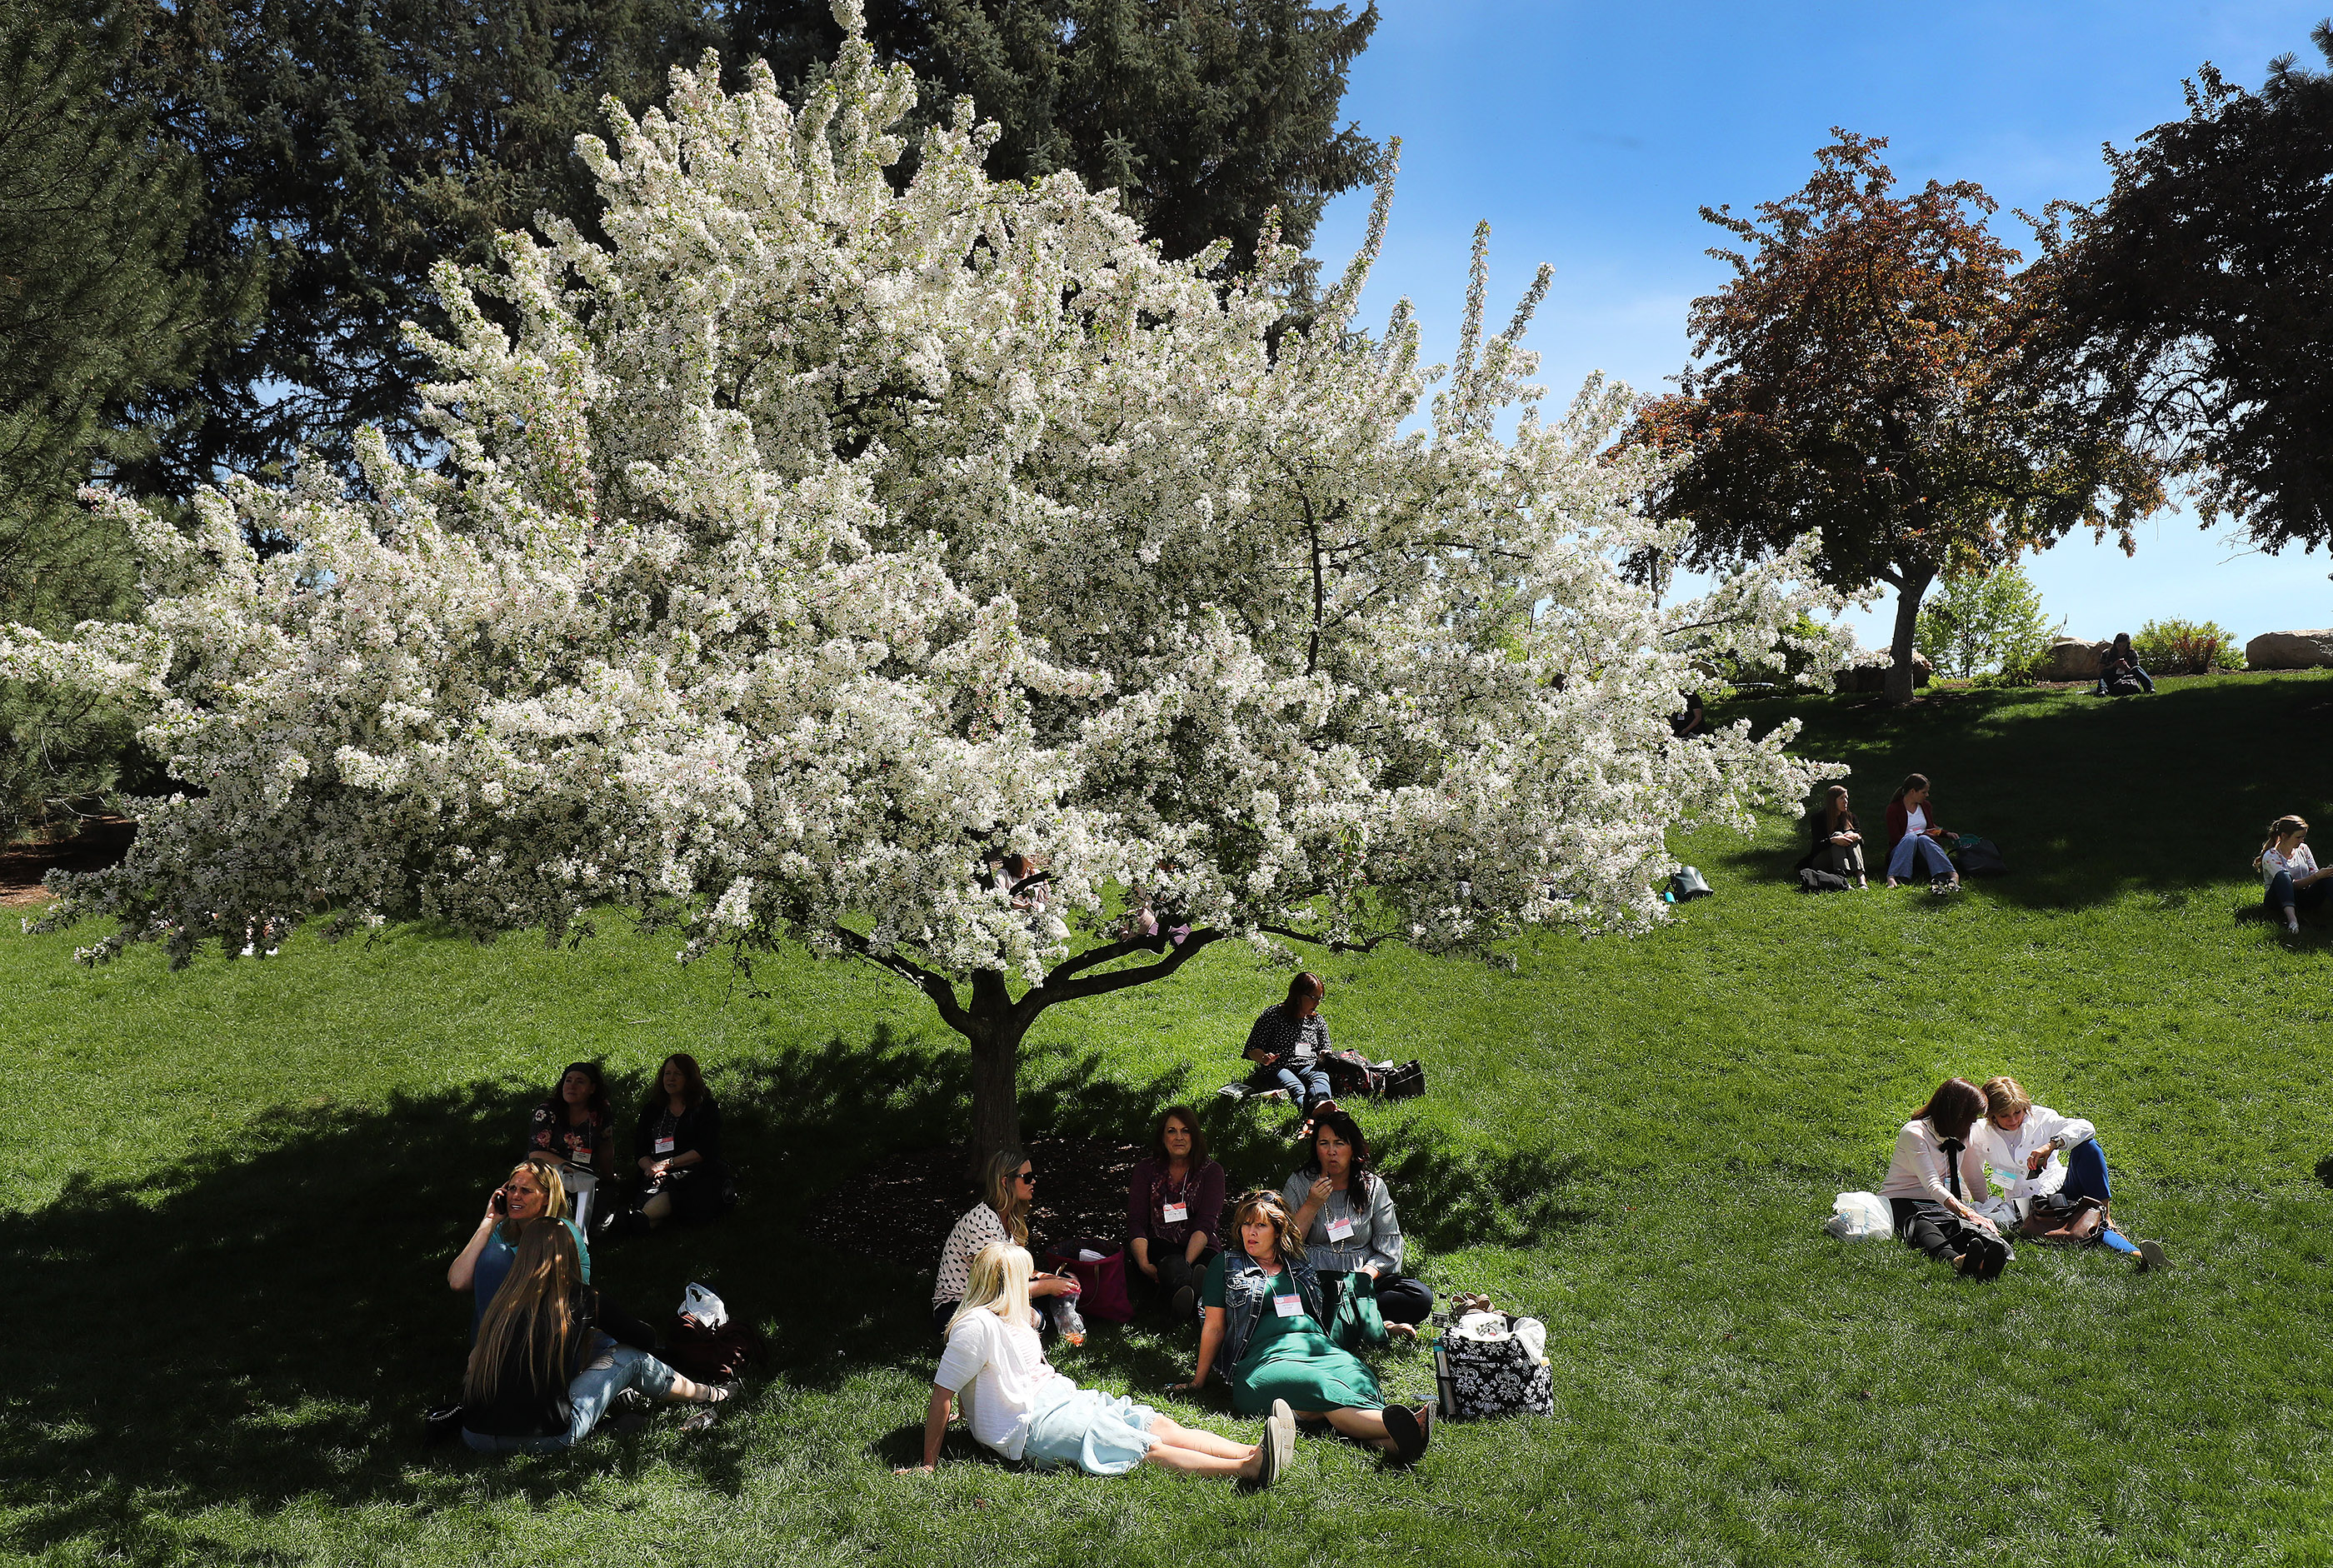 Attendees enjoy the sunshine during BYU Women's Conference in Provo on Friday, May 3, 2019.